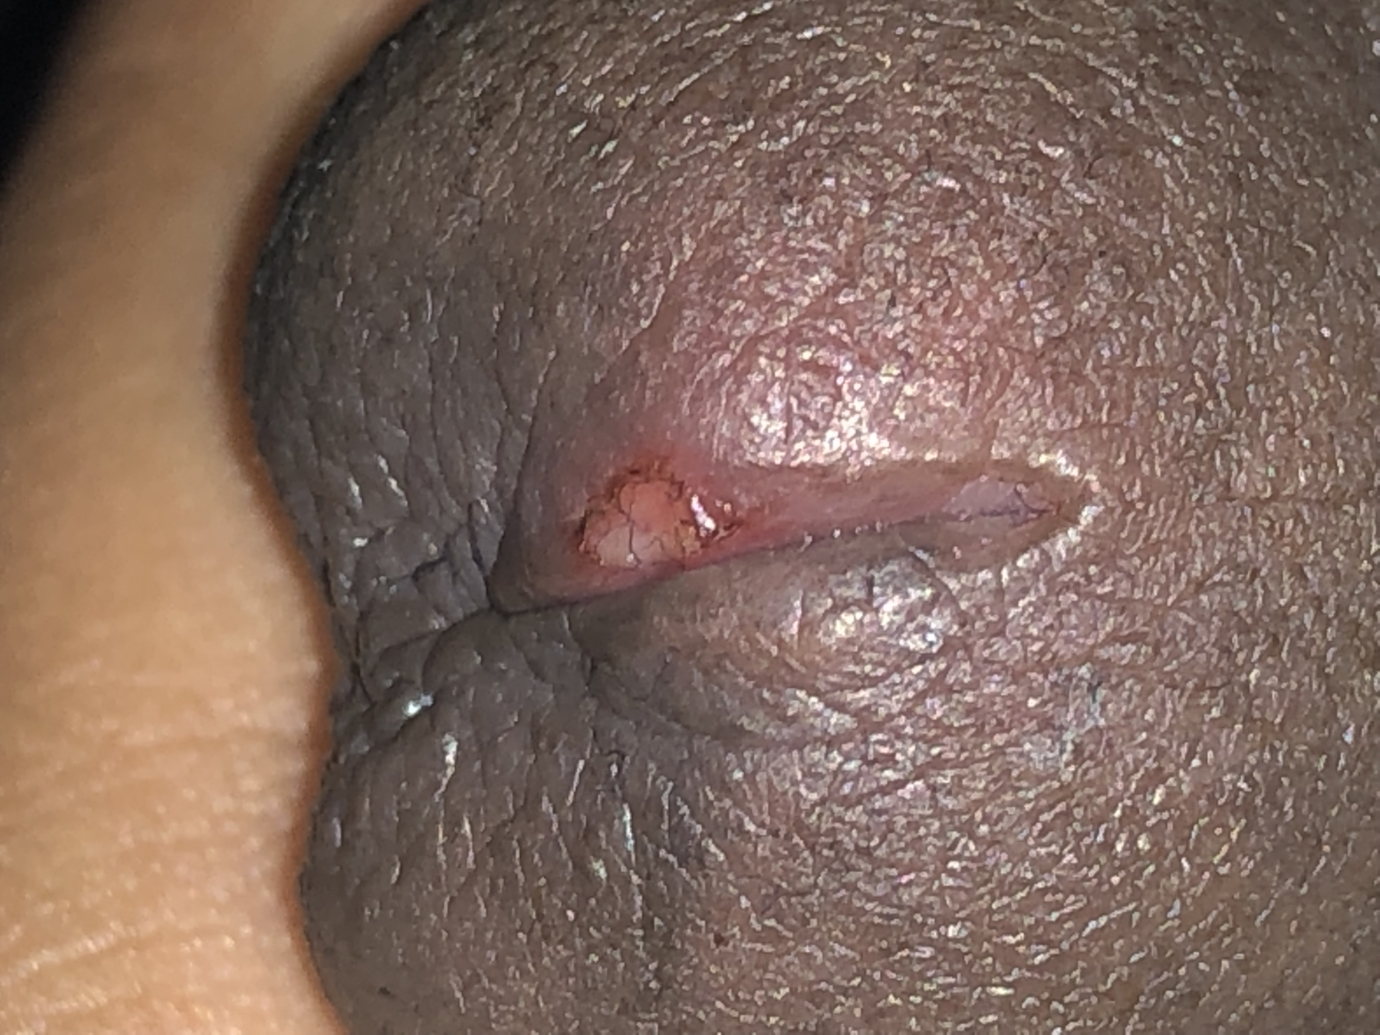 Peeling Skin On Penile Shaft